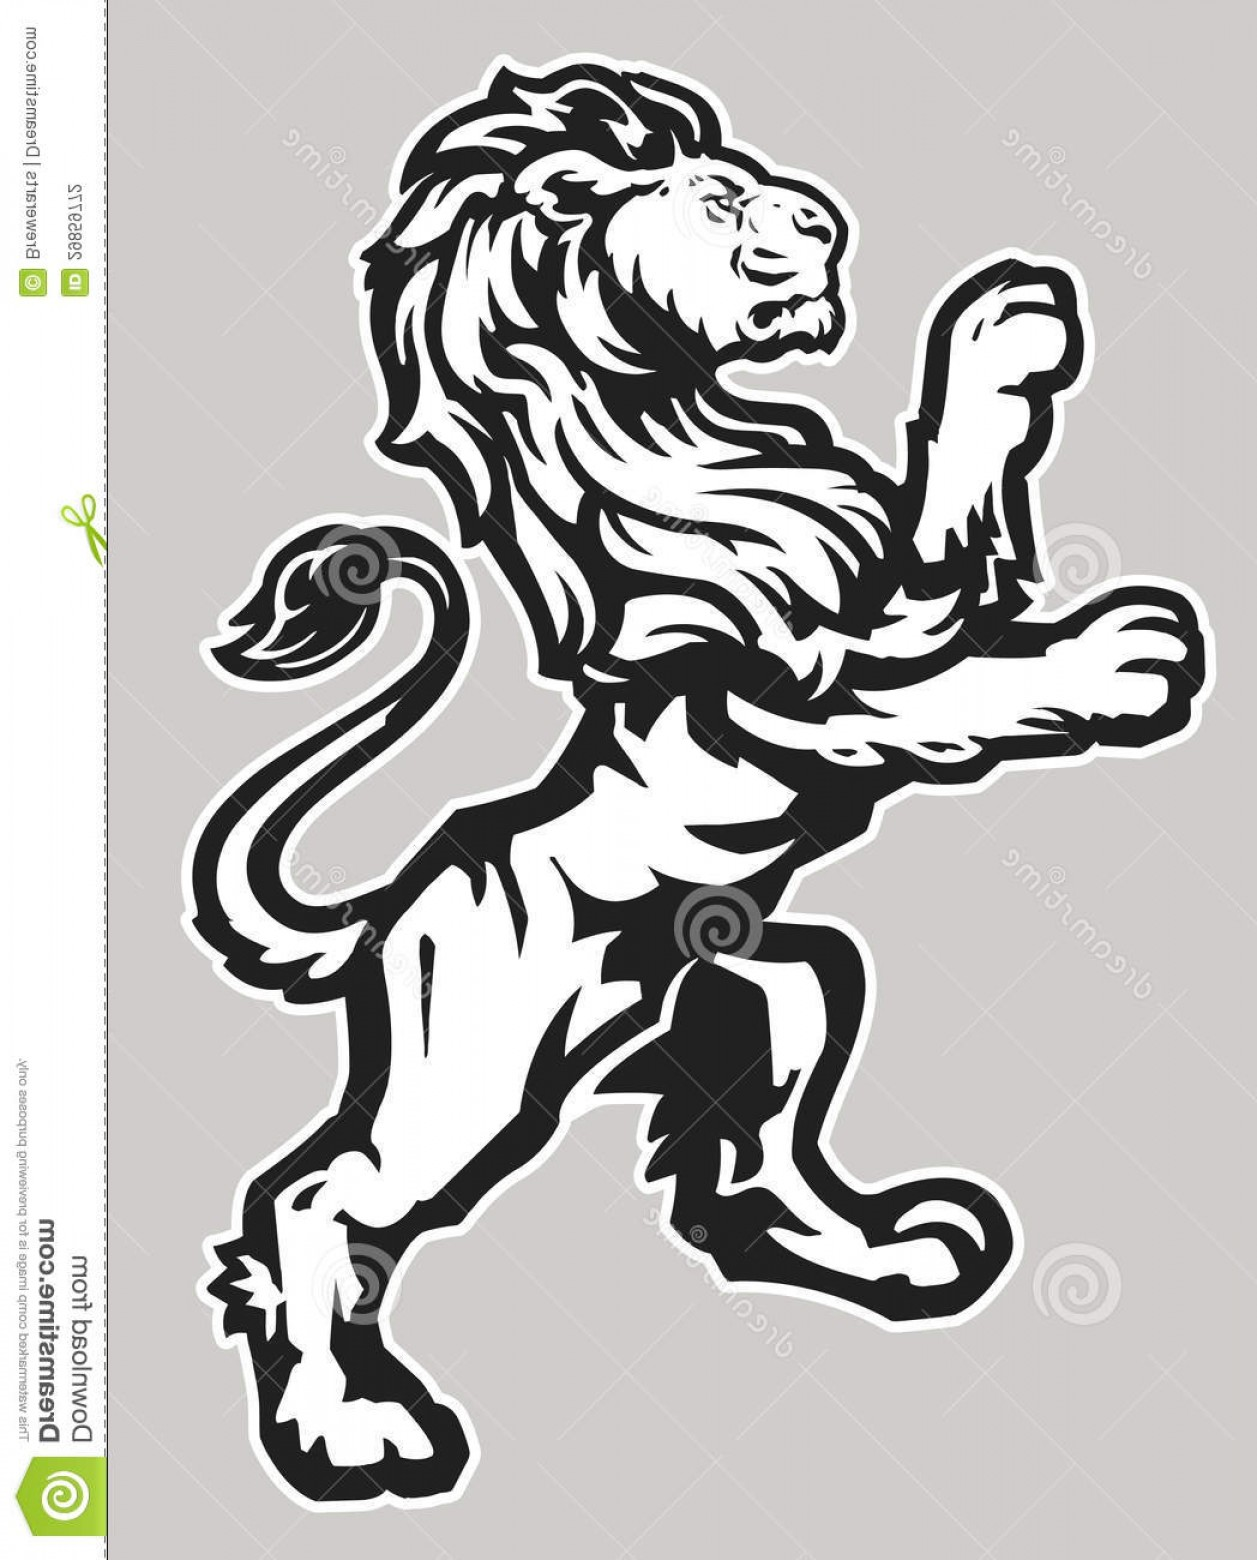 Standing Lions Crest Vector: Stock Photography Proud Lion Rampant Symbol Classic Imagery Grouped Heraldic Mascot Imagery Crest Designs Image